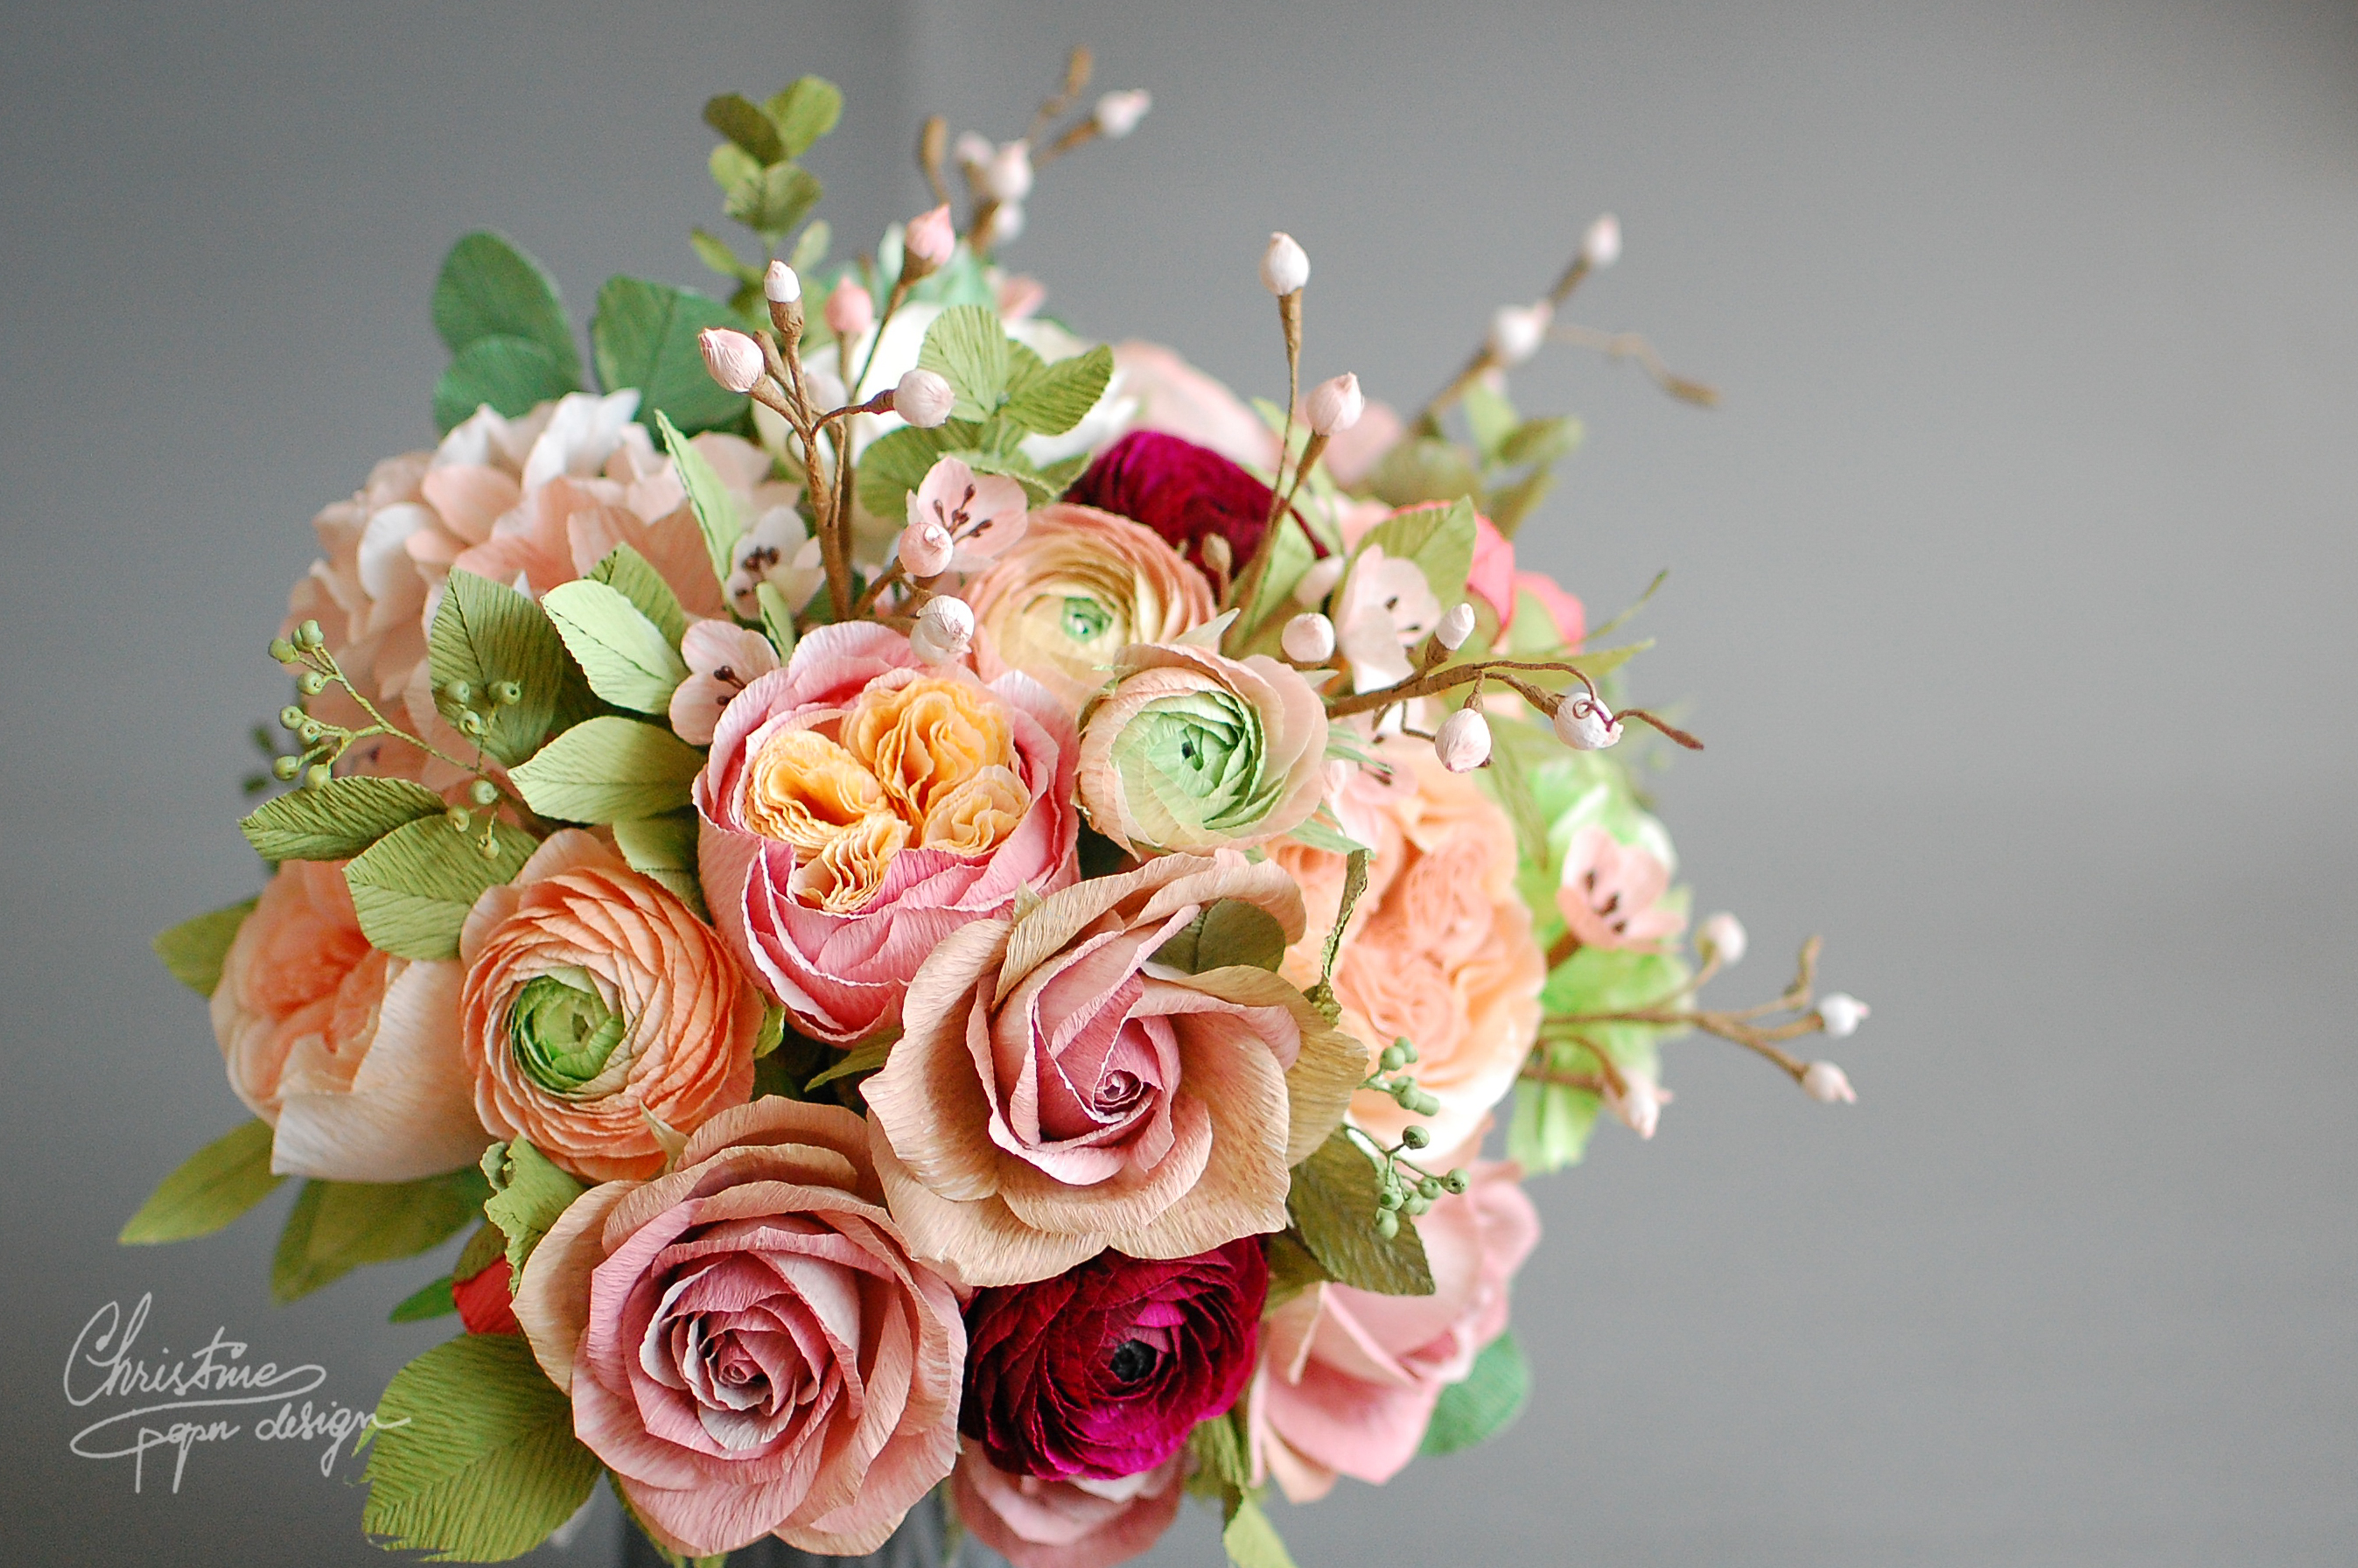 Paper Flowers For A Fairytale Wedding!